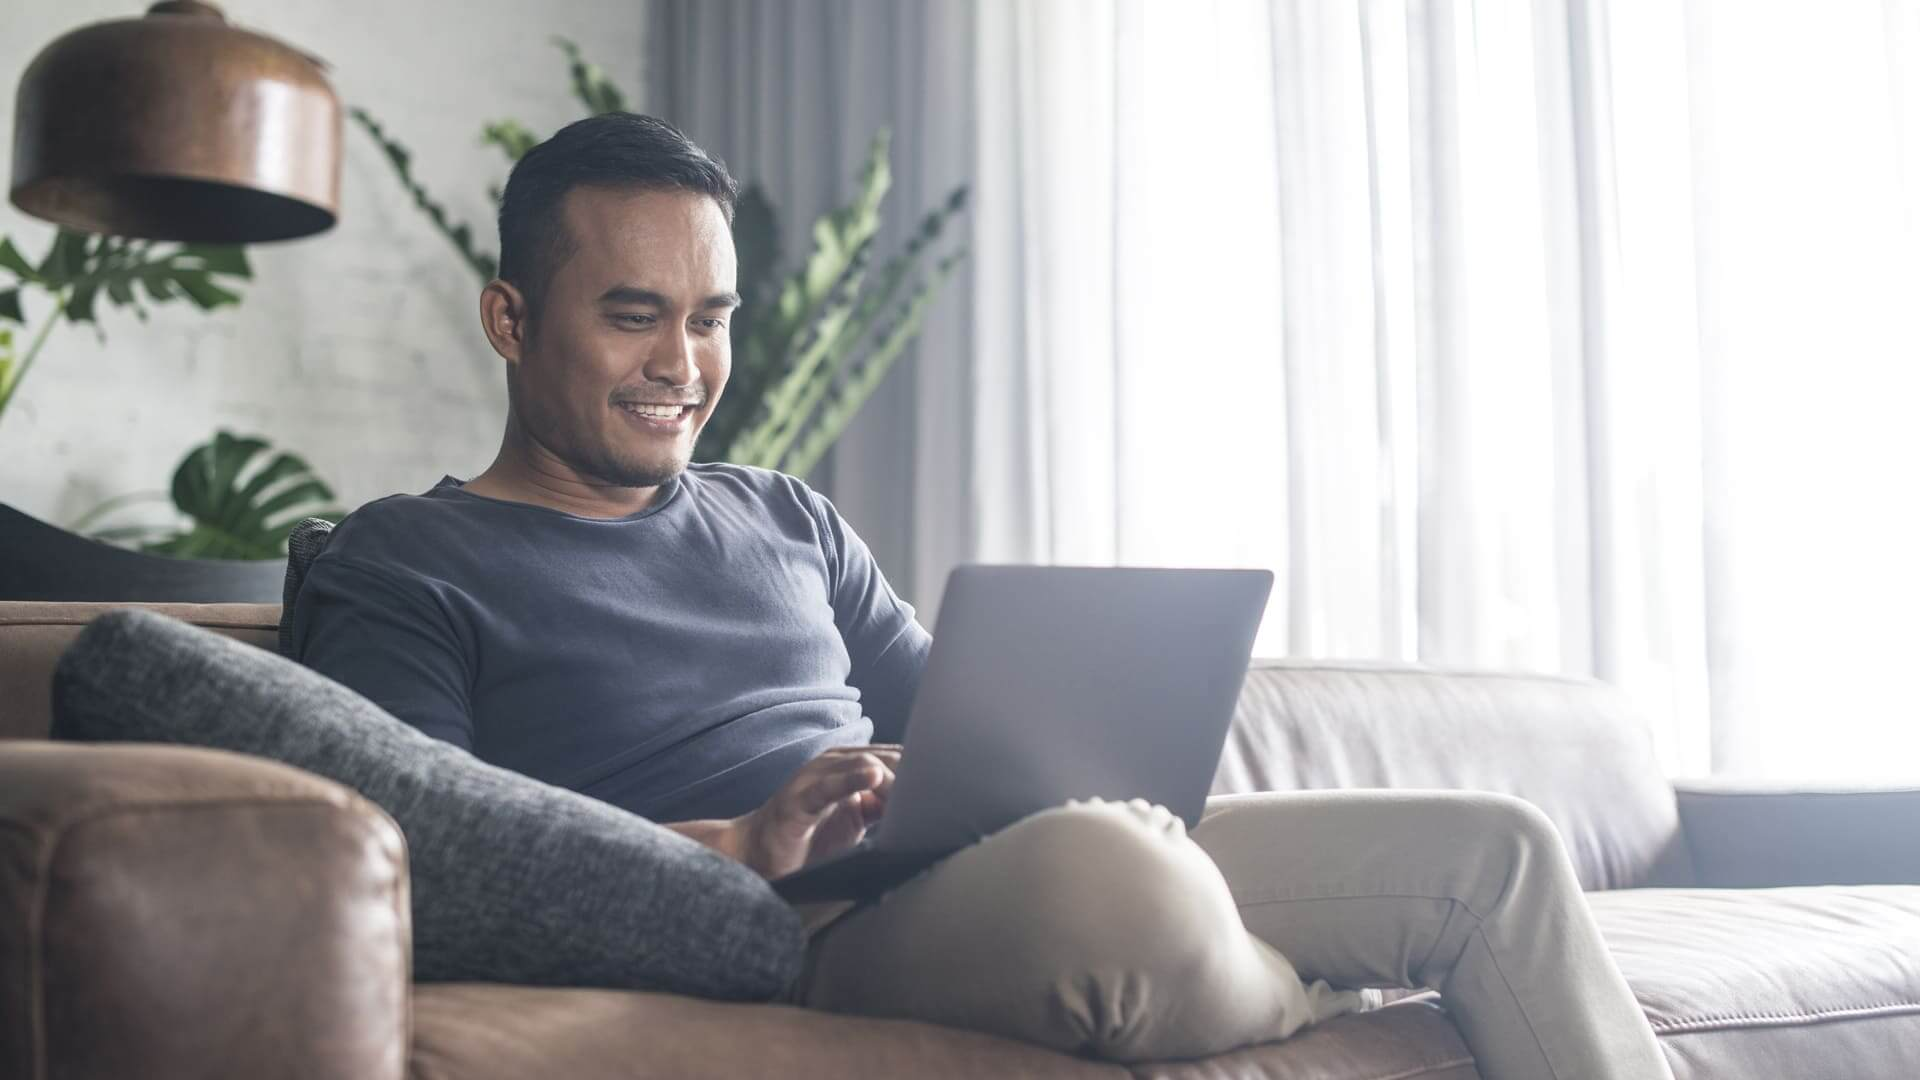 man in home on laptop